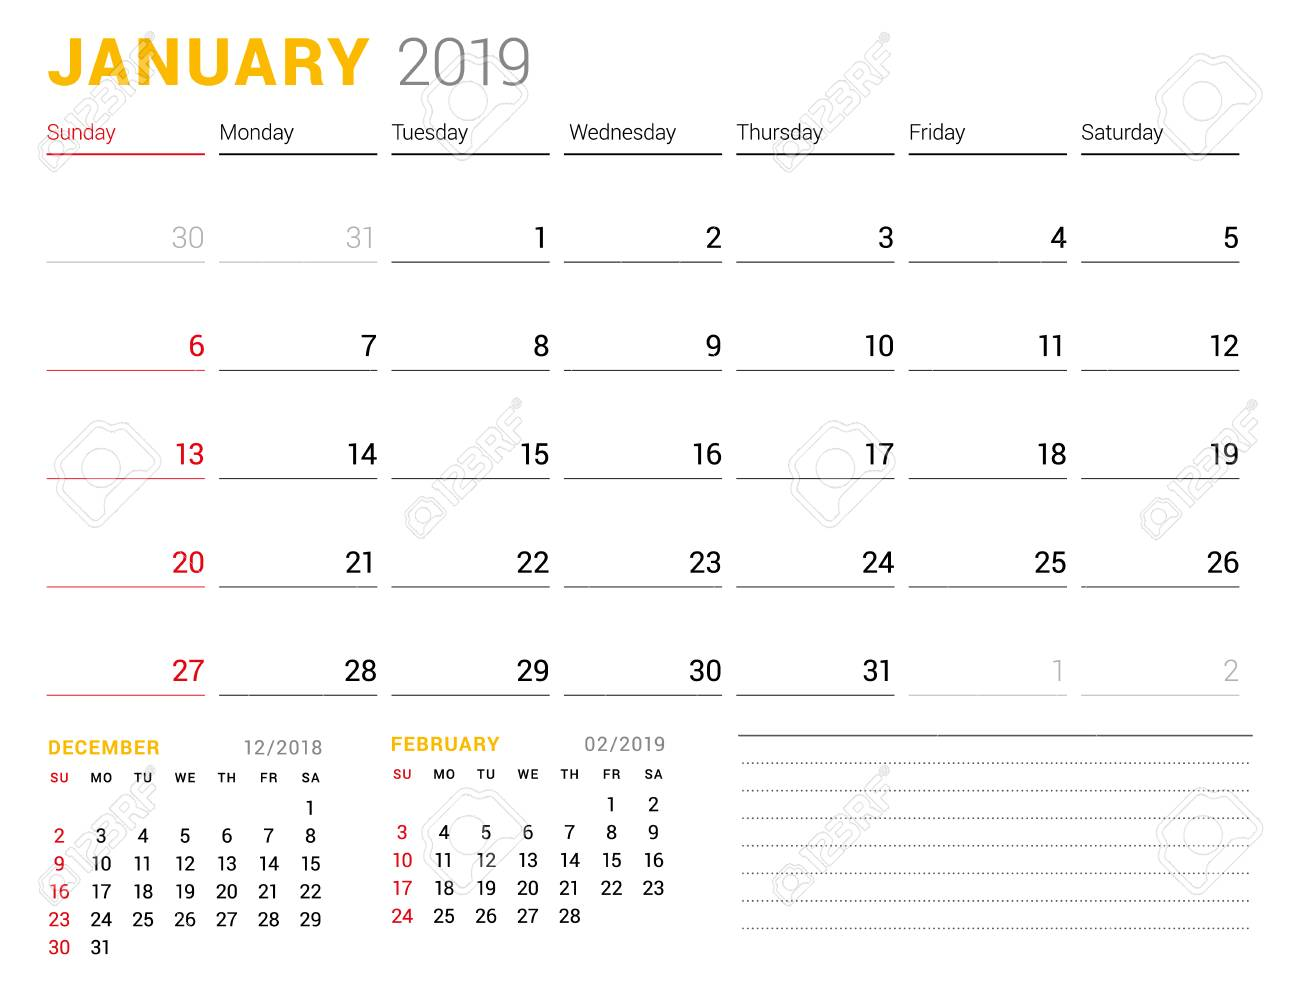 Calendar Template For January 2019 Business Planner Stationery